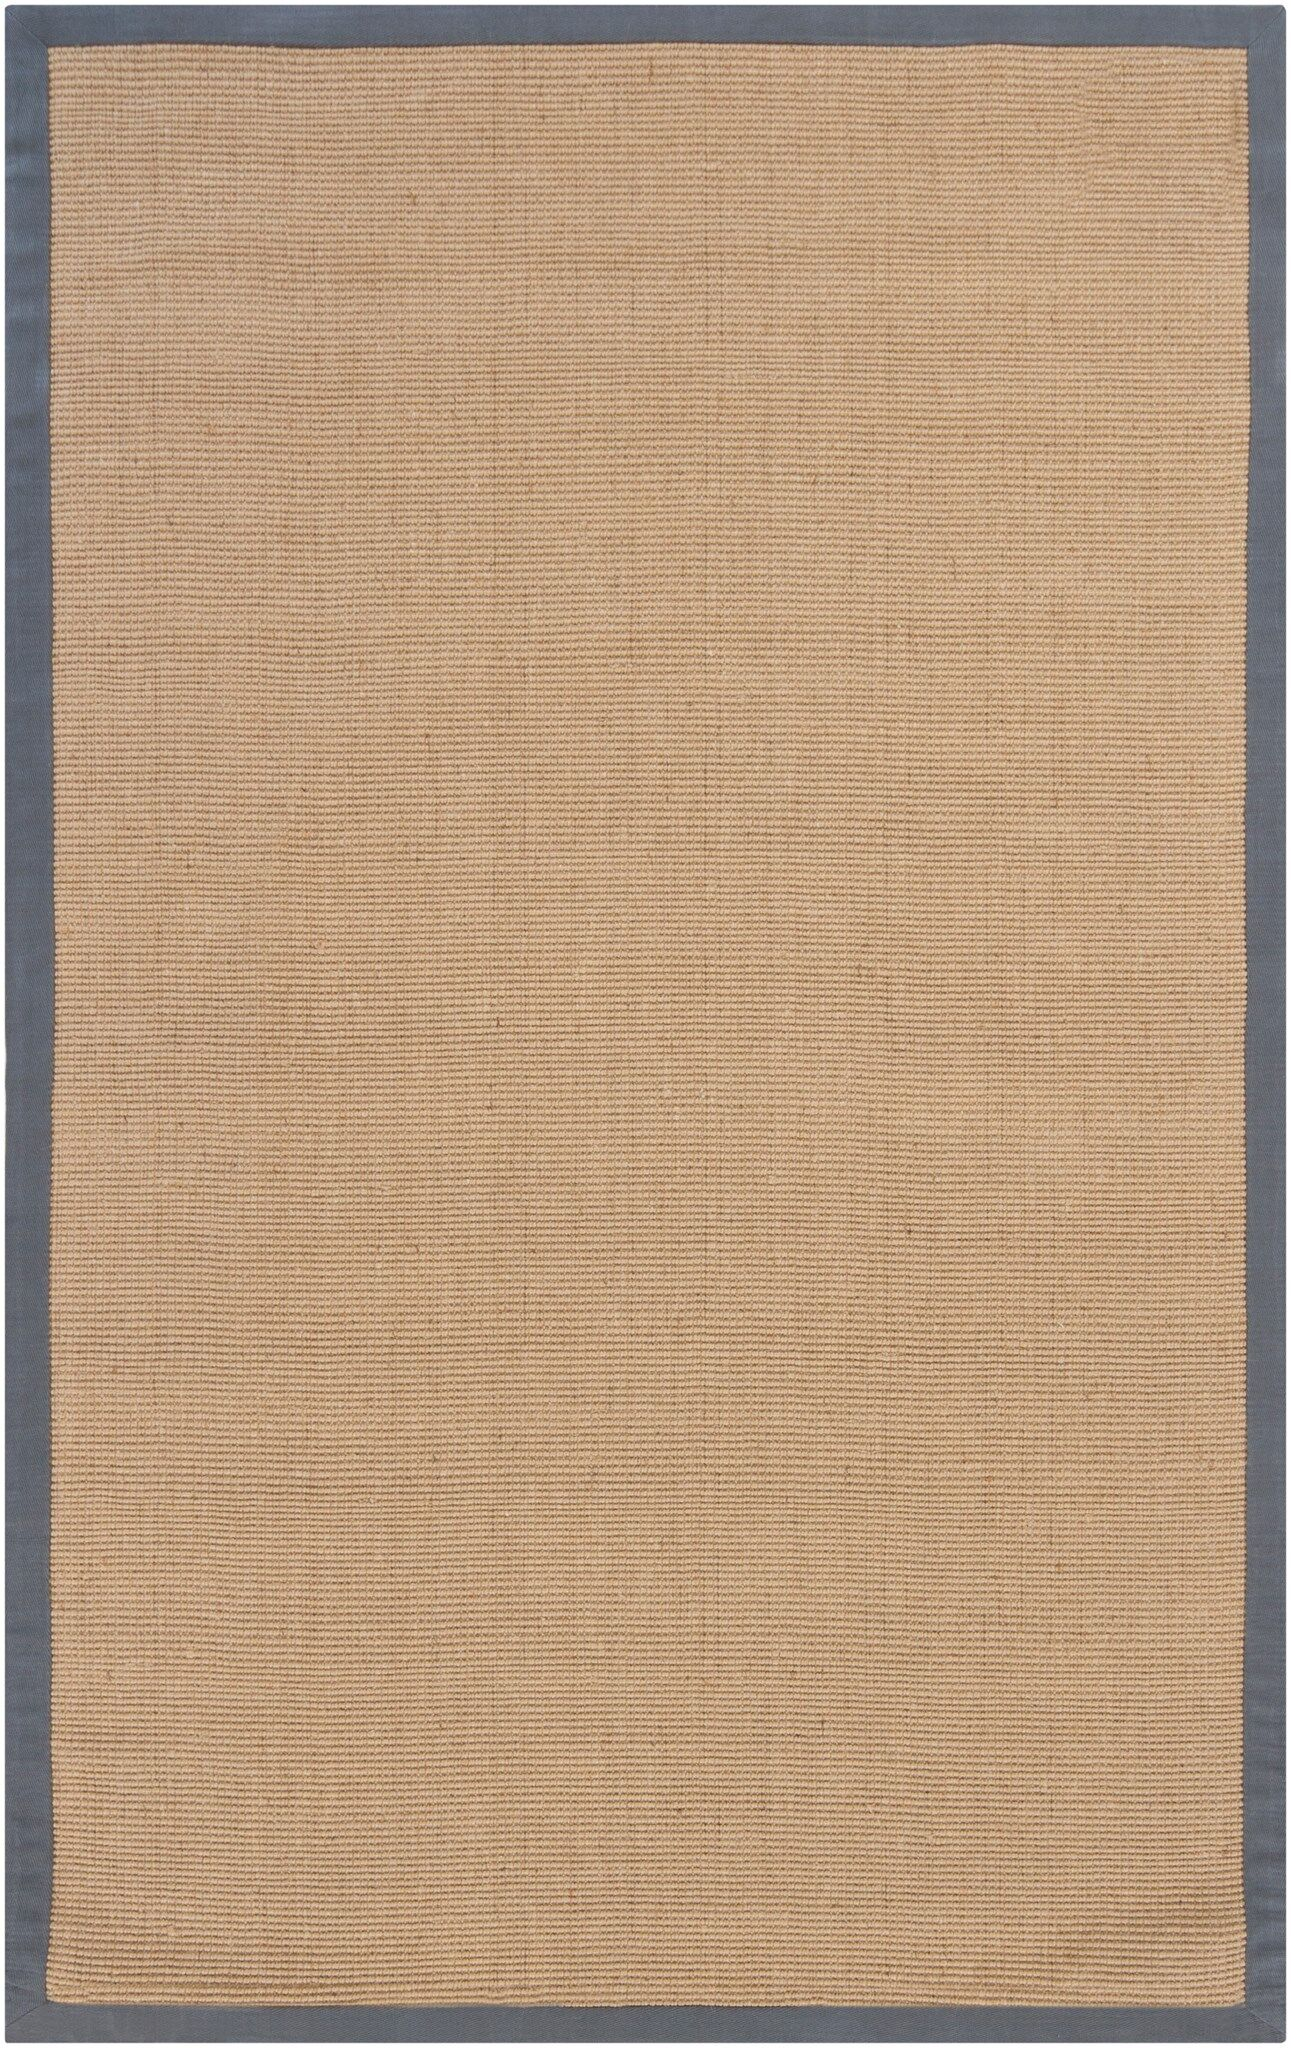 Wroblewski Brown/Gray Area Rug Rug Size: Rectangle 5' x 8'